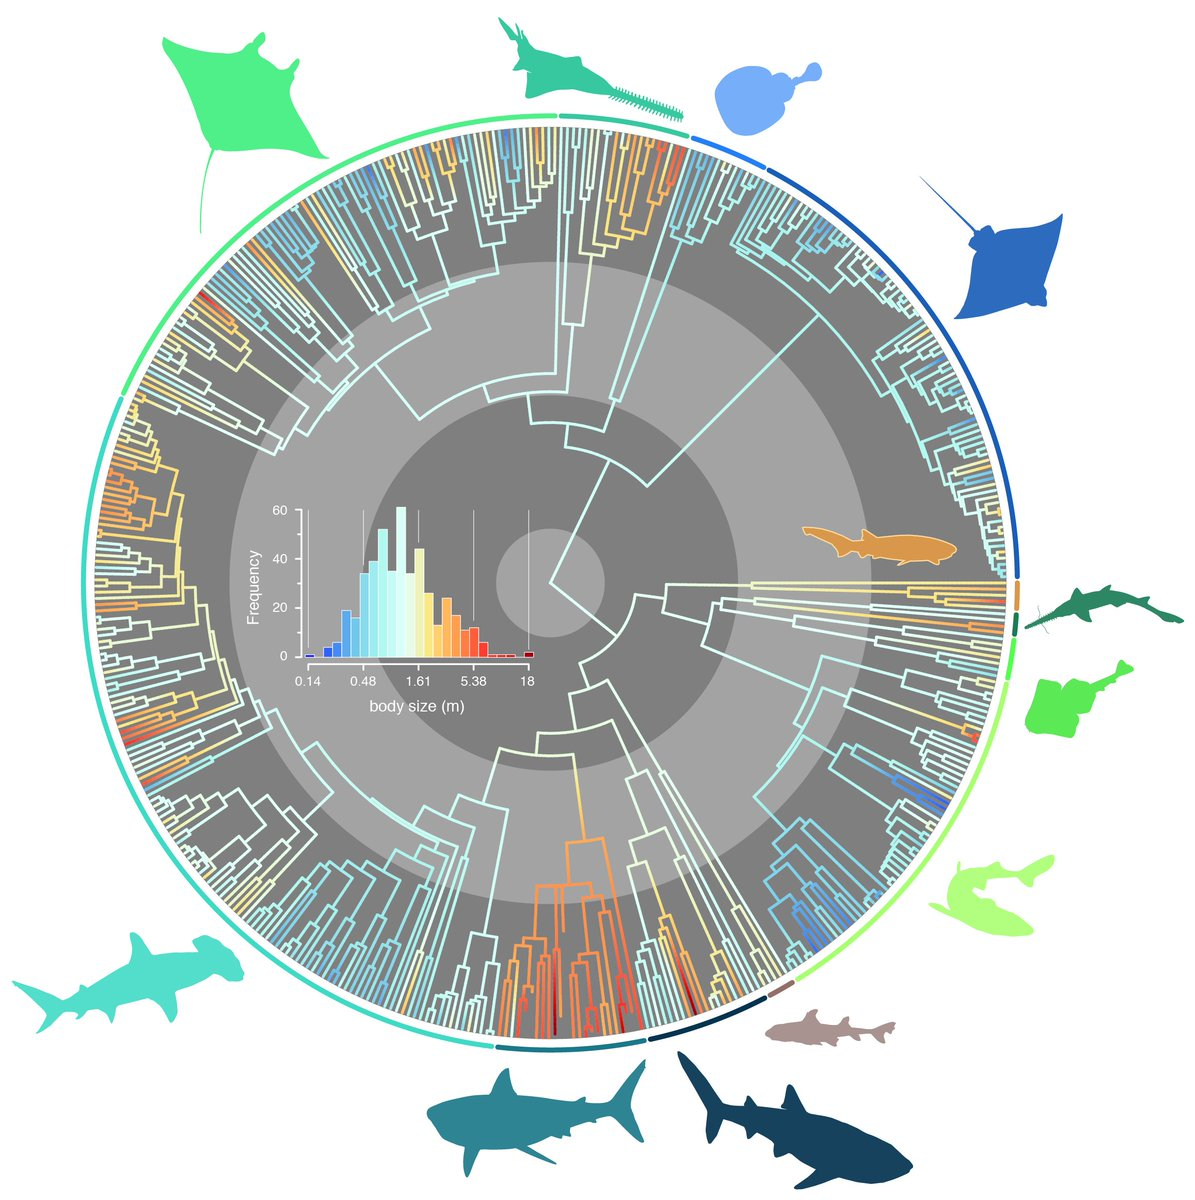 hight resolution of our new paper in journal evo studies the evolutionary pathways toward shark gigantism https onlinelibrary wiley com doi full 10 1111 evo 13680